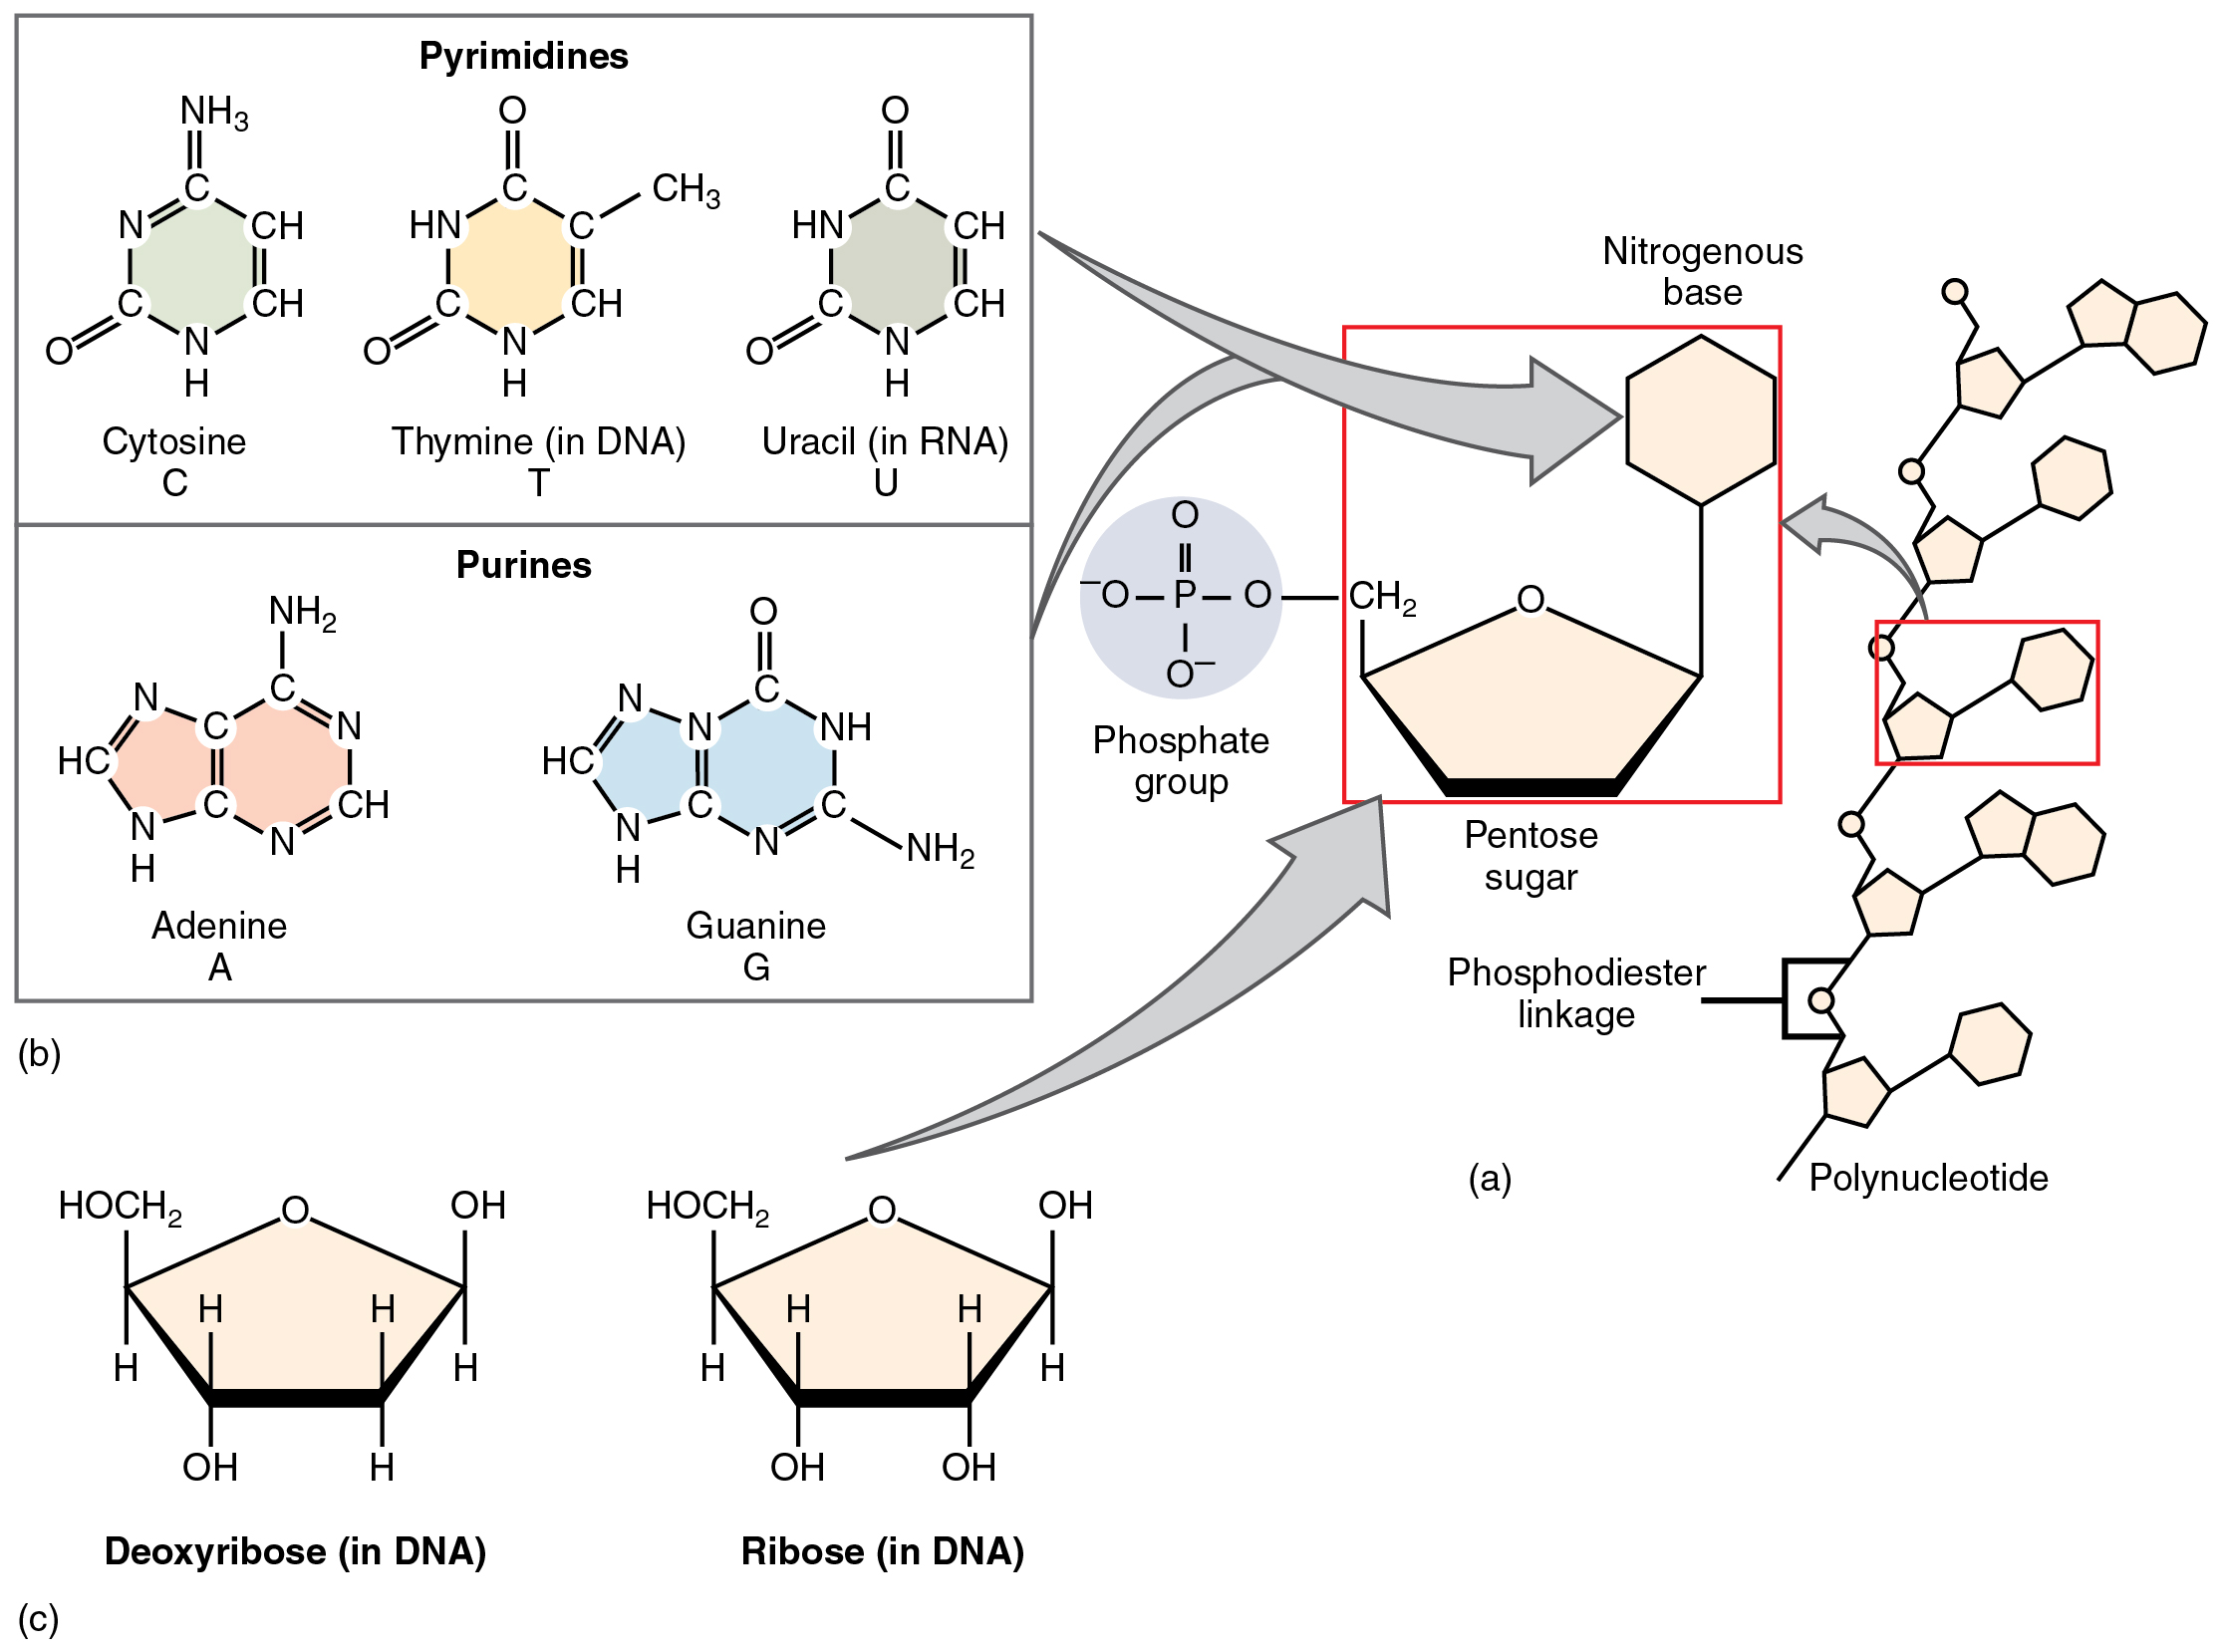 This figure shows the structure of nucleotides.